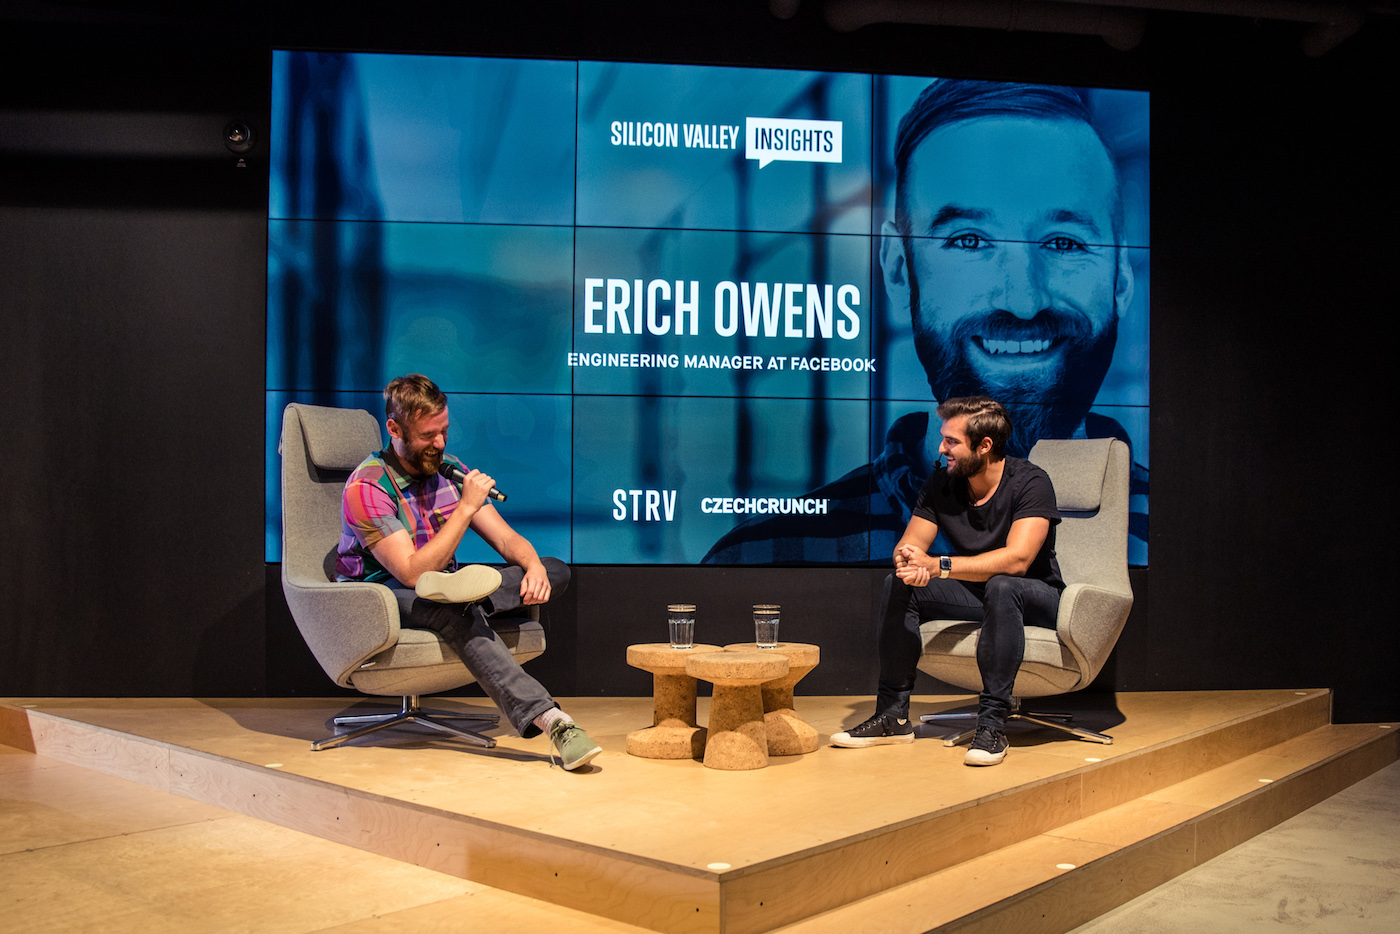 Silicon Valley Insights with Erich Owens